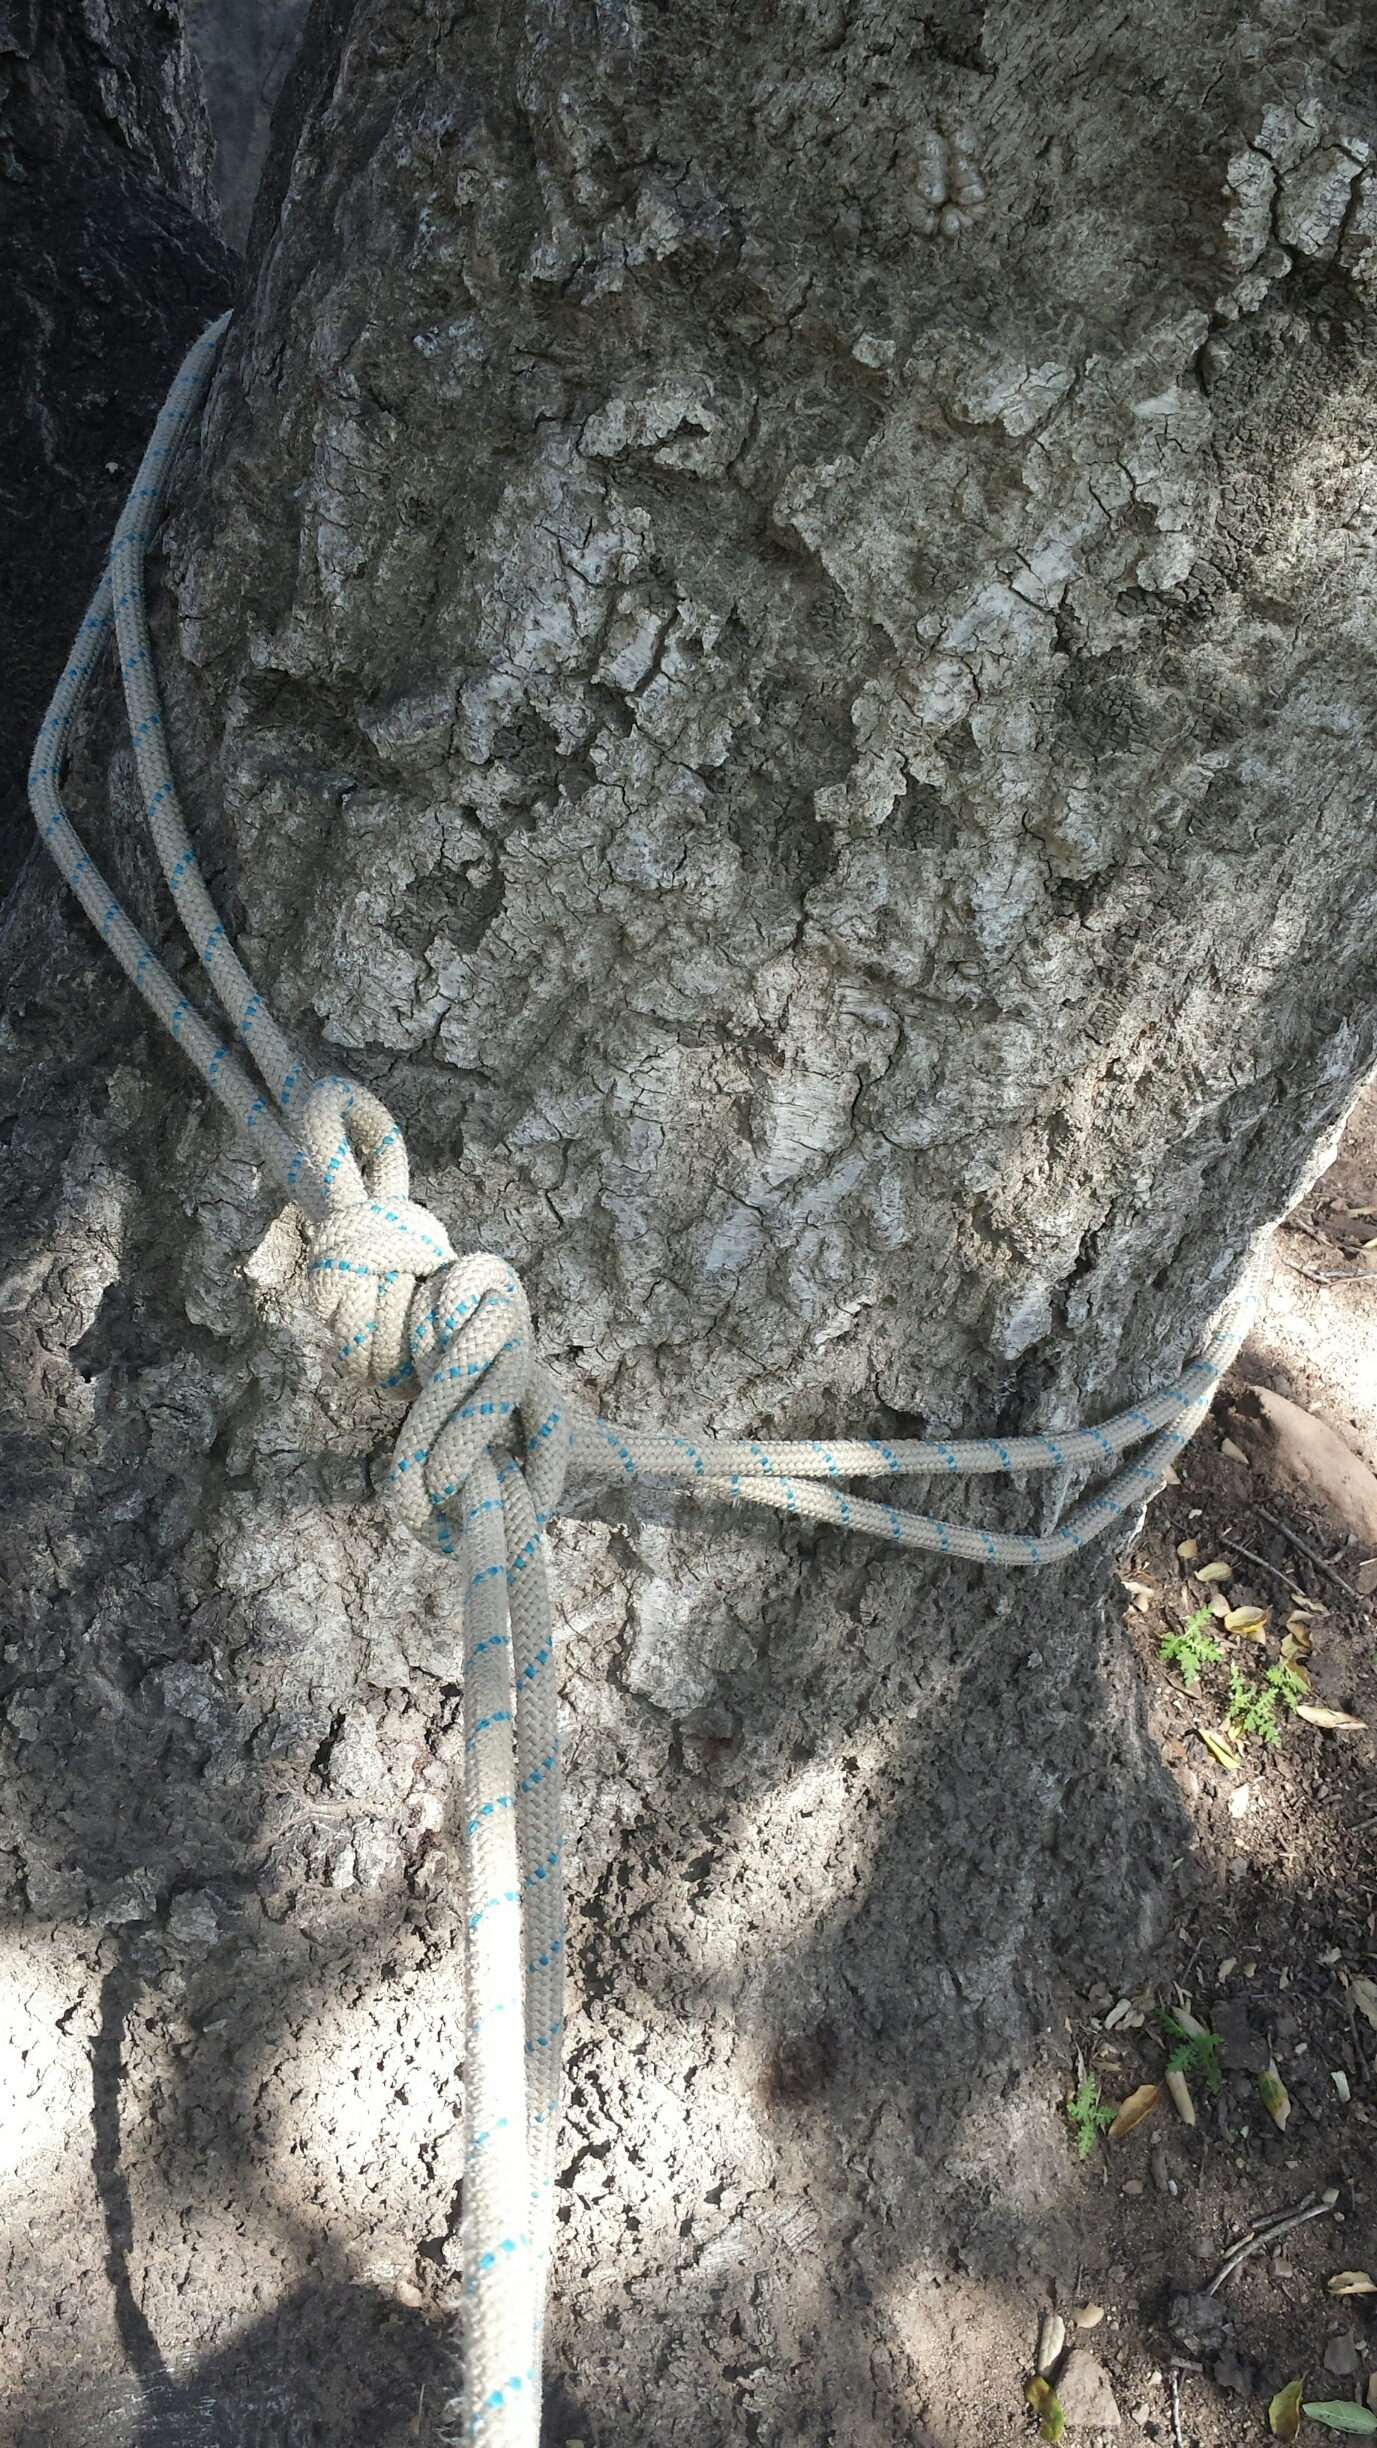 MICRO VIEW - Anchor piece 1 is built using a bowline on a bite. This allows for two strands of rope to come out of the master point of the bowline. One strand for the anchor builder to attach themselves to as a safety line, and the other to use as one side of the anchor. The bowline is finished with an overhand or double fisherman's knot.